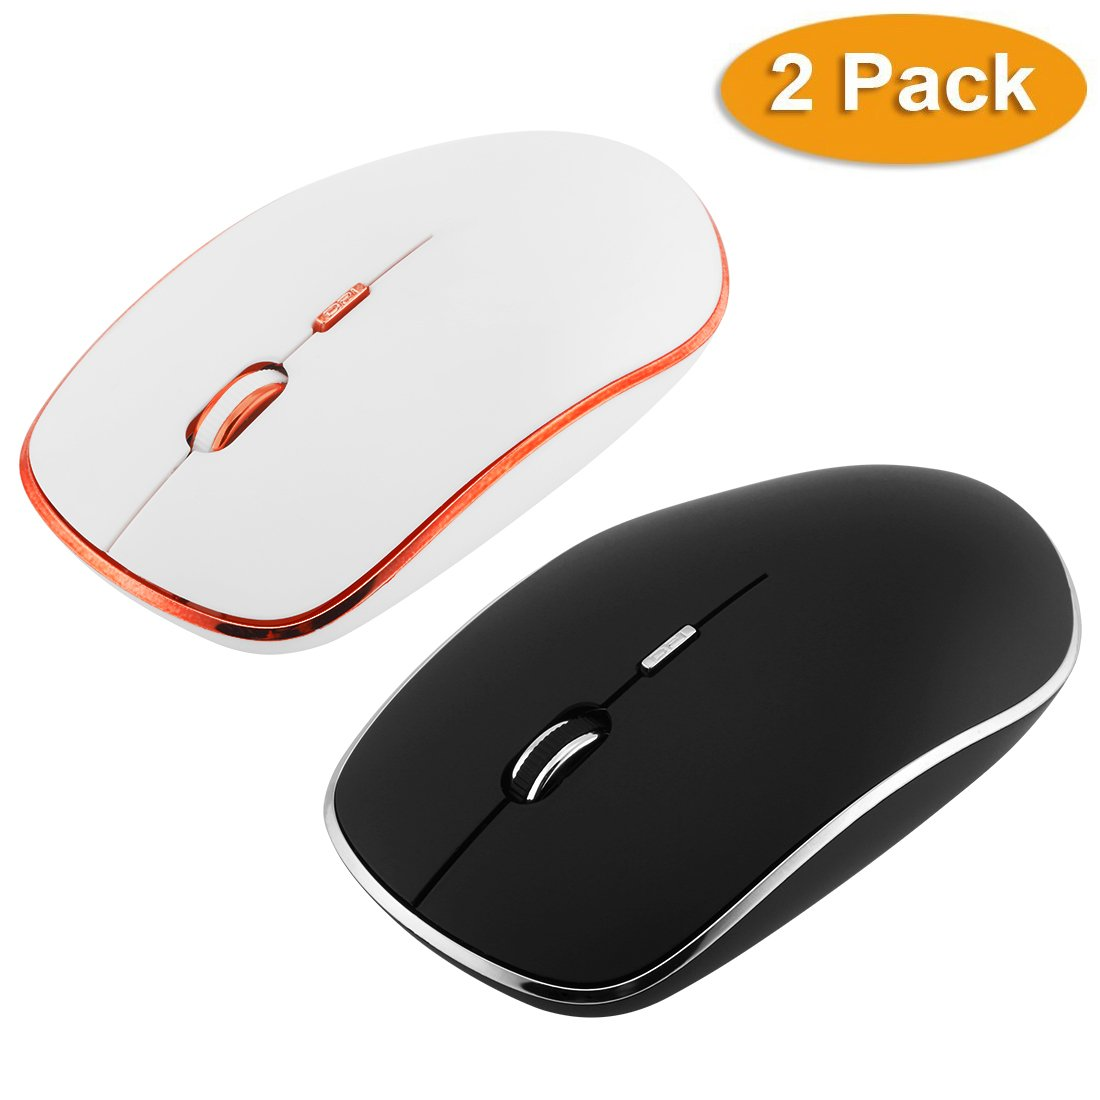 2.4G Slim Silent Wireless Computer Mouse With Nano Receiver,1800DPI Adjustable Optical Mouse Silent Click For PC Laptop